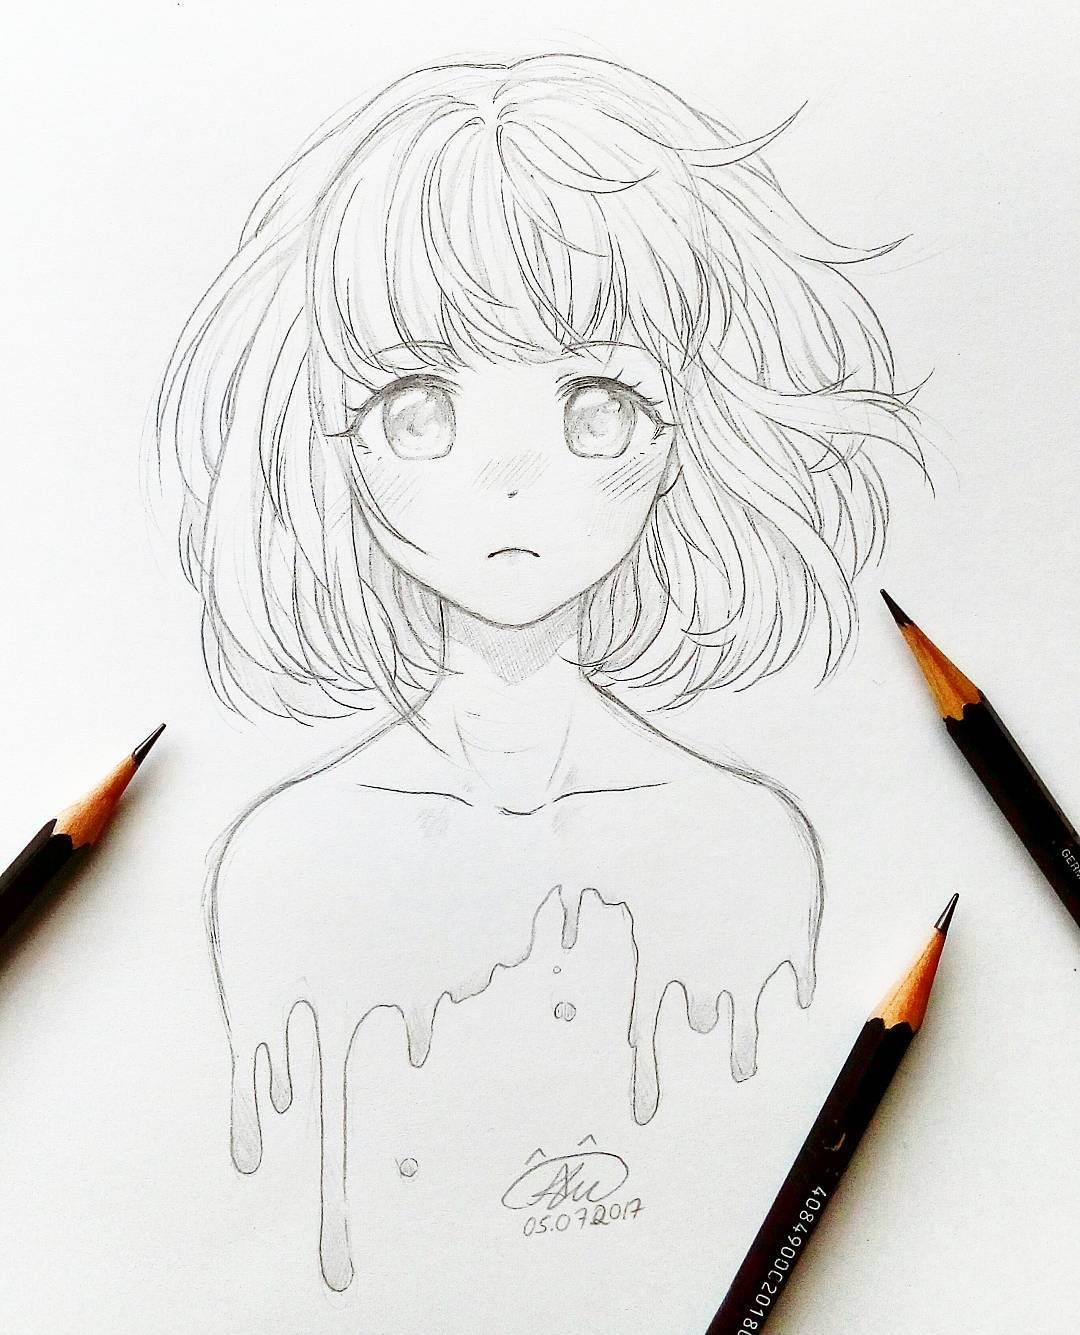 5 933 Likes 70 Comments A L U L I Alustrations On Instagram B E L I E V E R First Things Anime Sketch Anime Drawings Art Inspiration Drawing